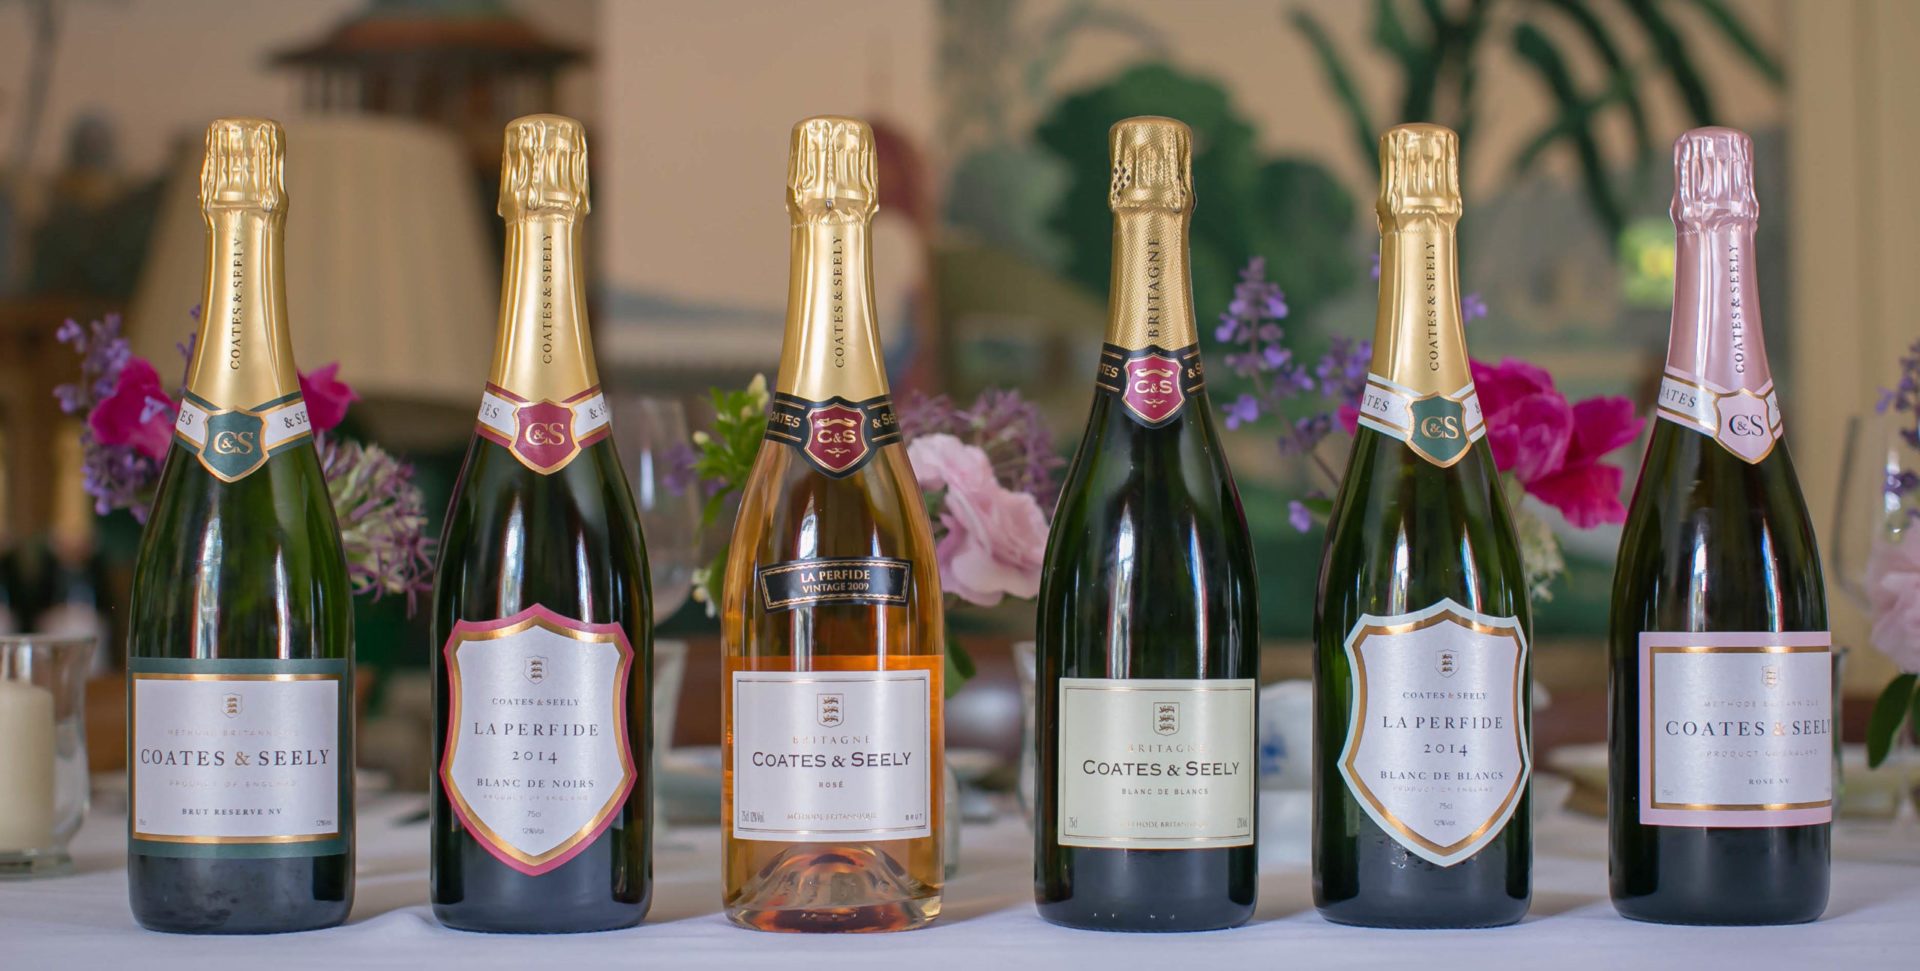 Coate & Seely sparkling wines